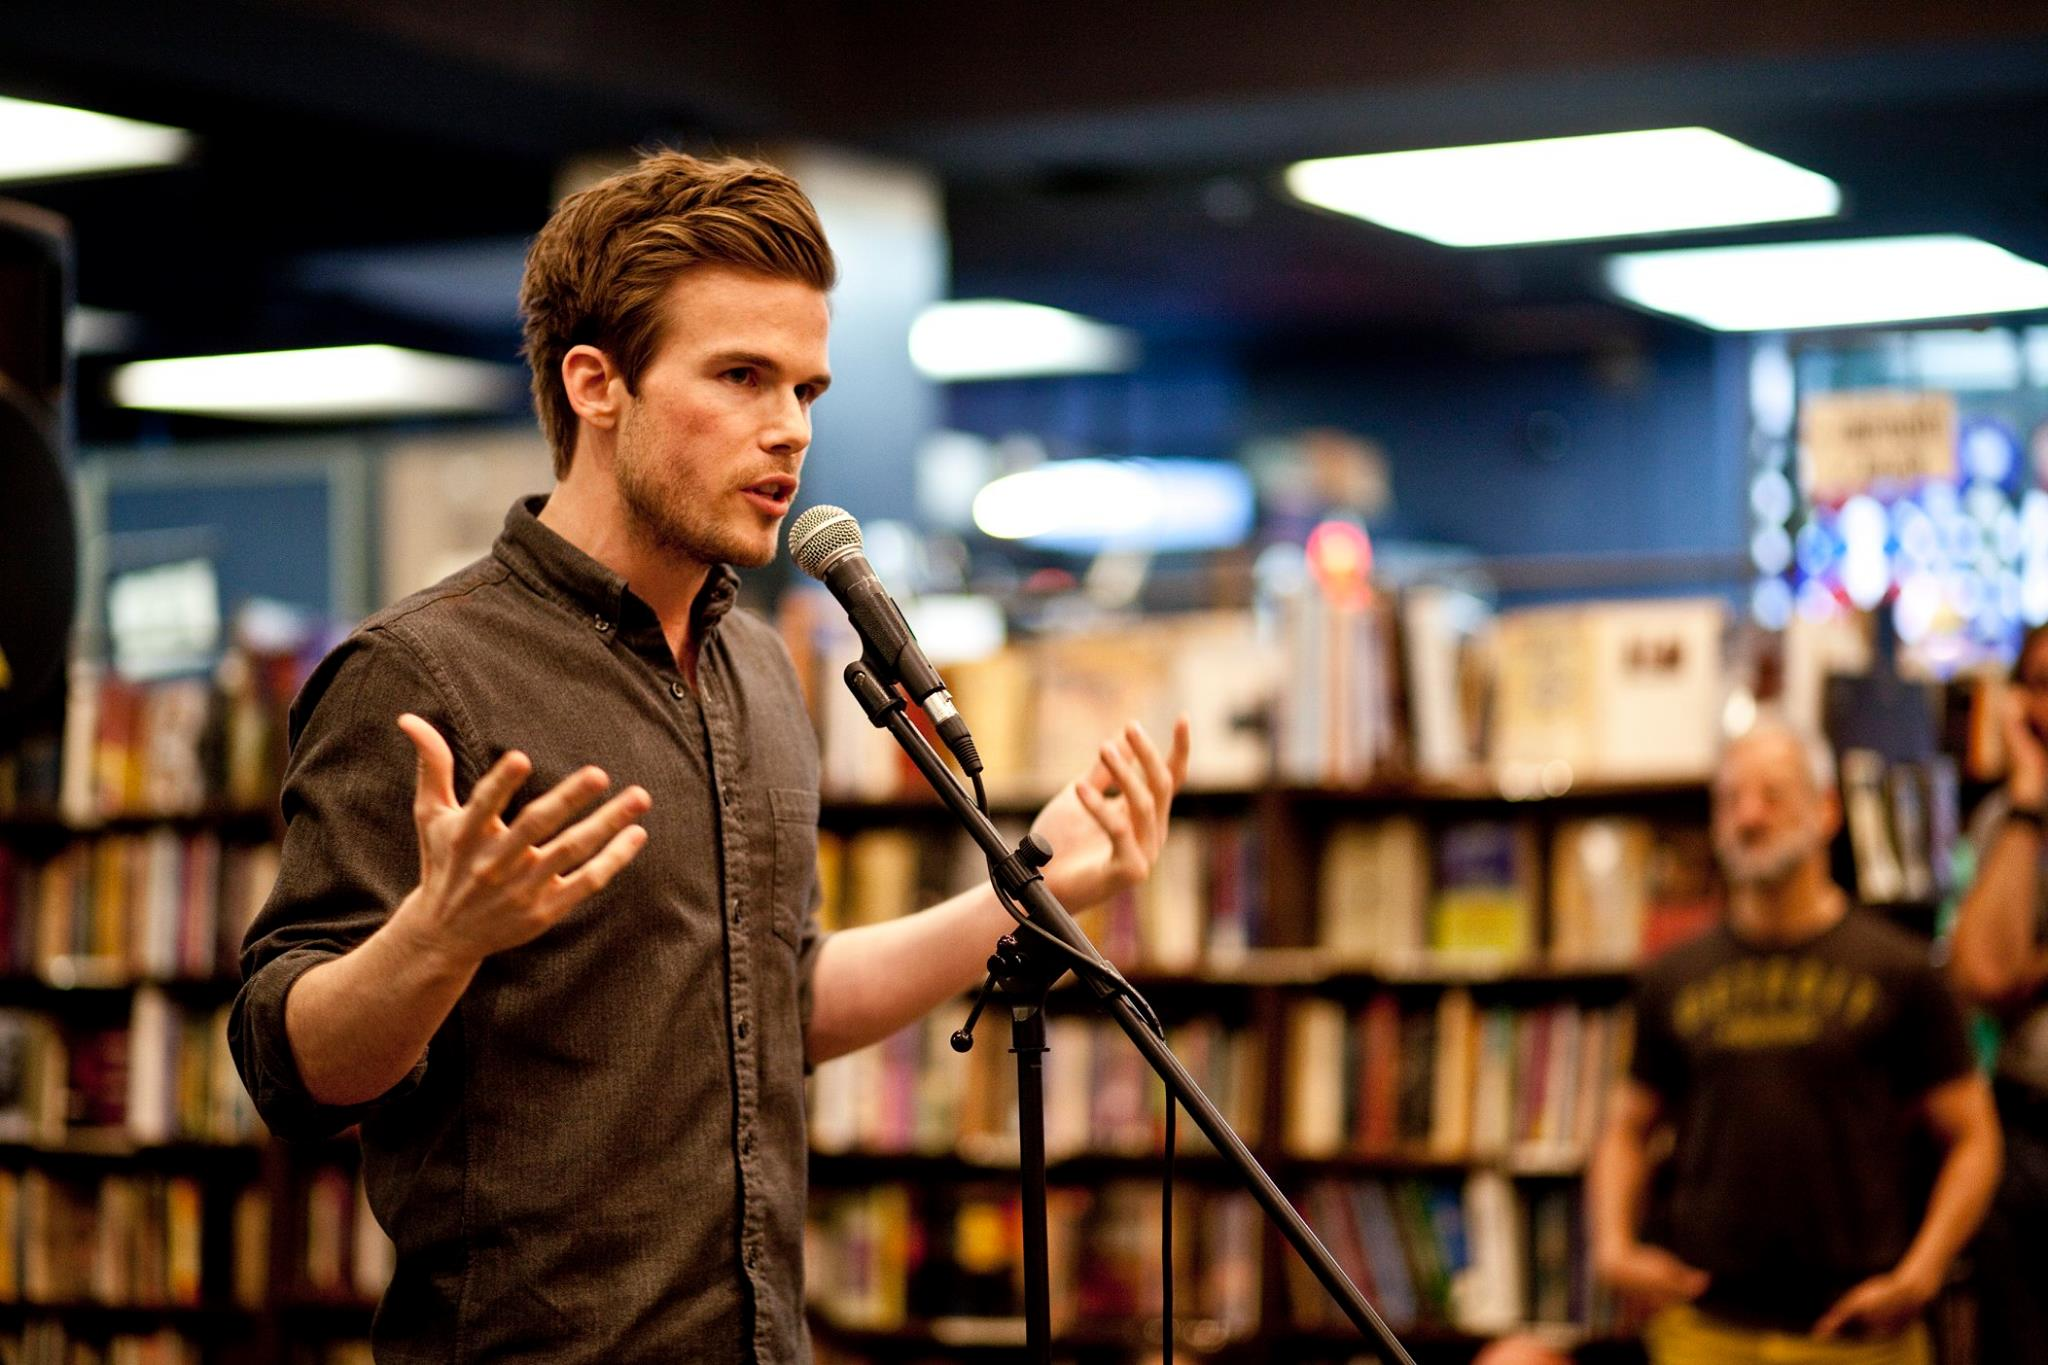 Colin Wright speaking at The Last Bookstore